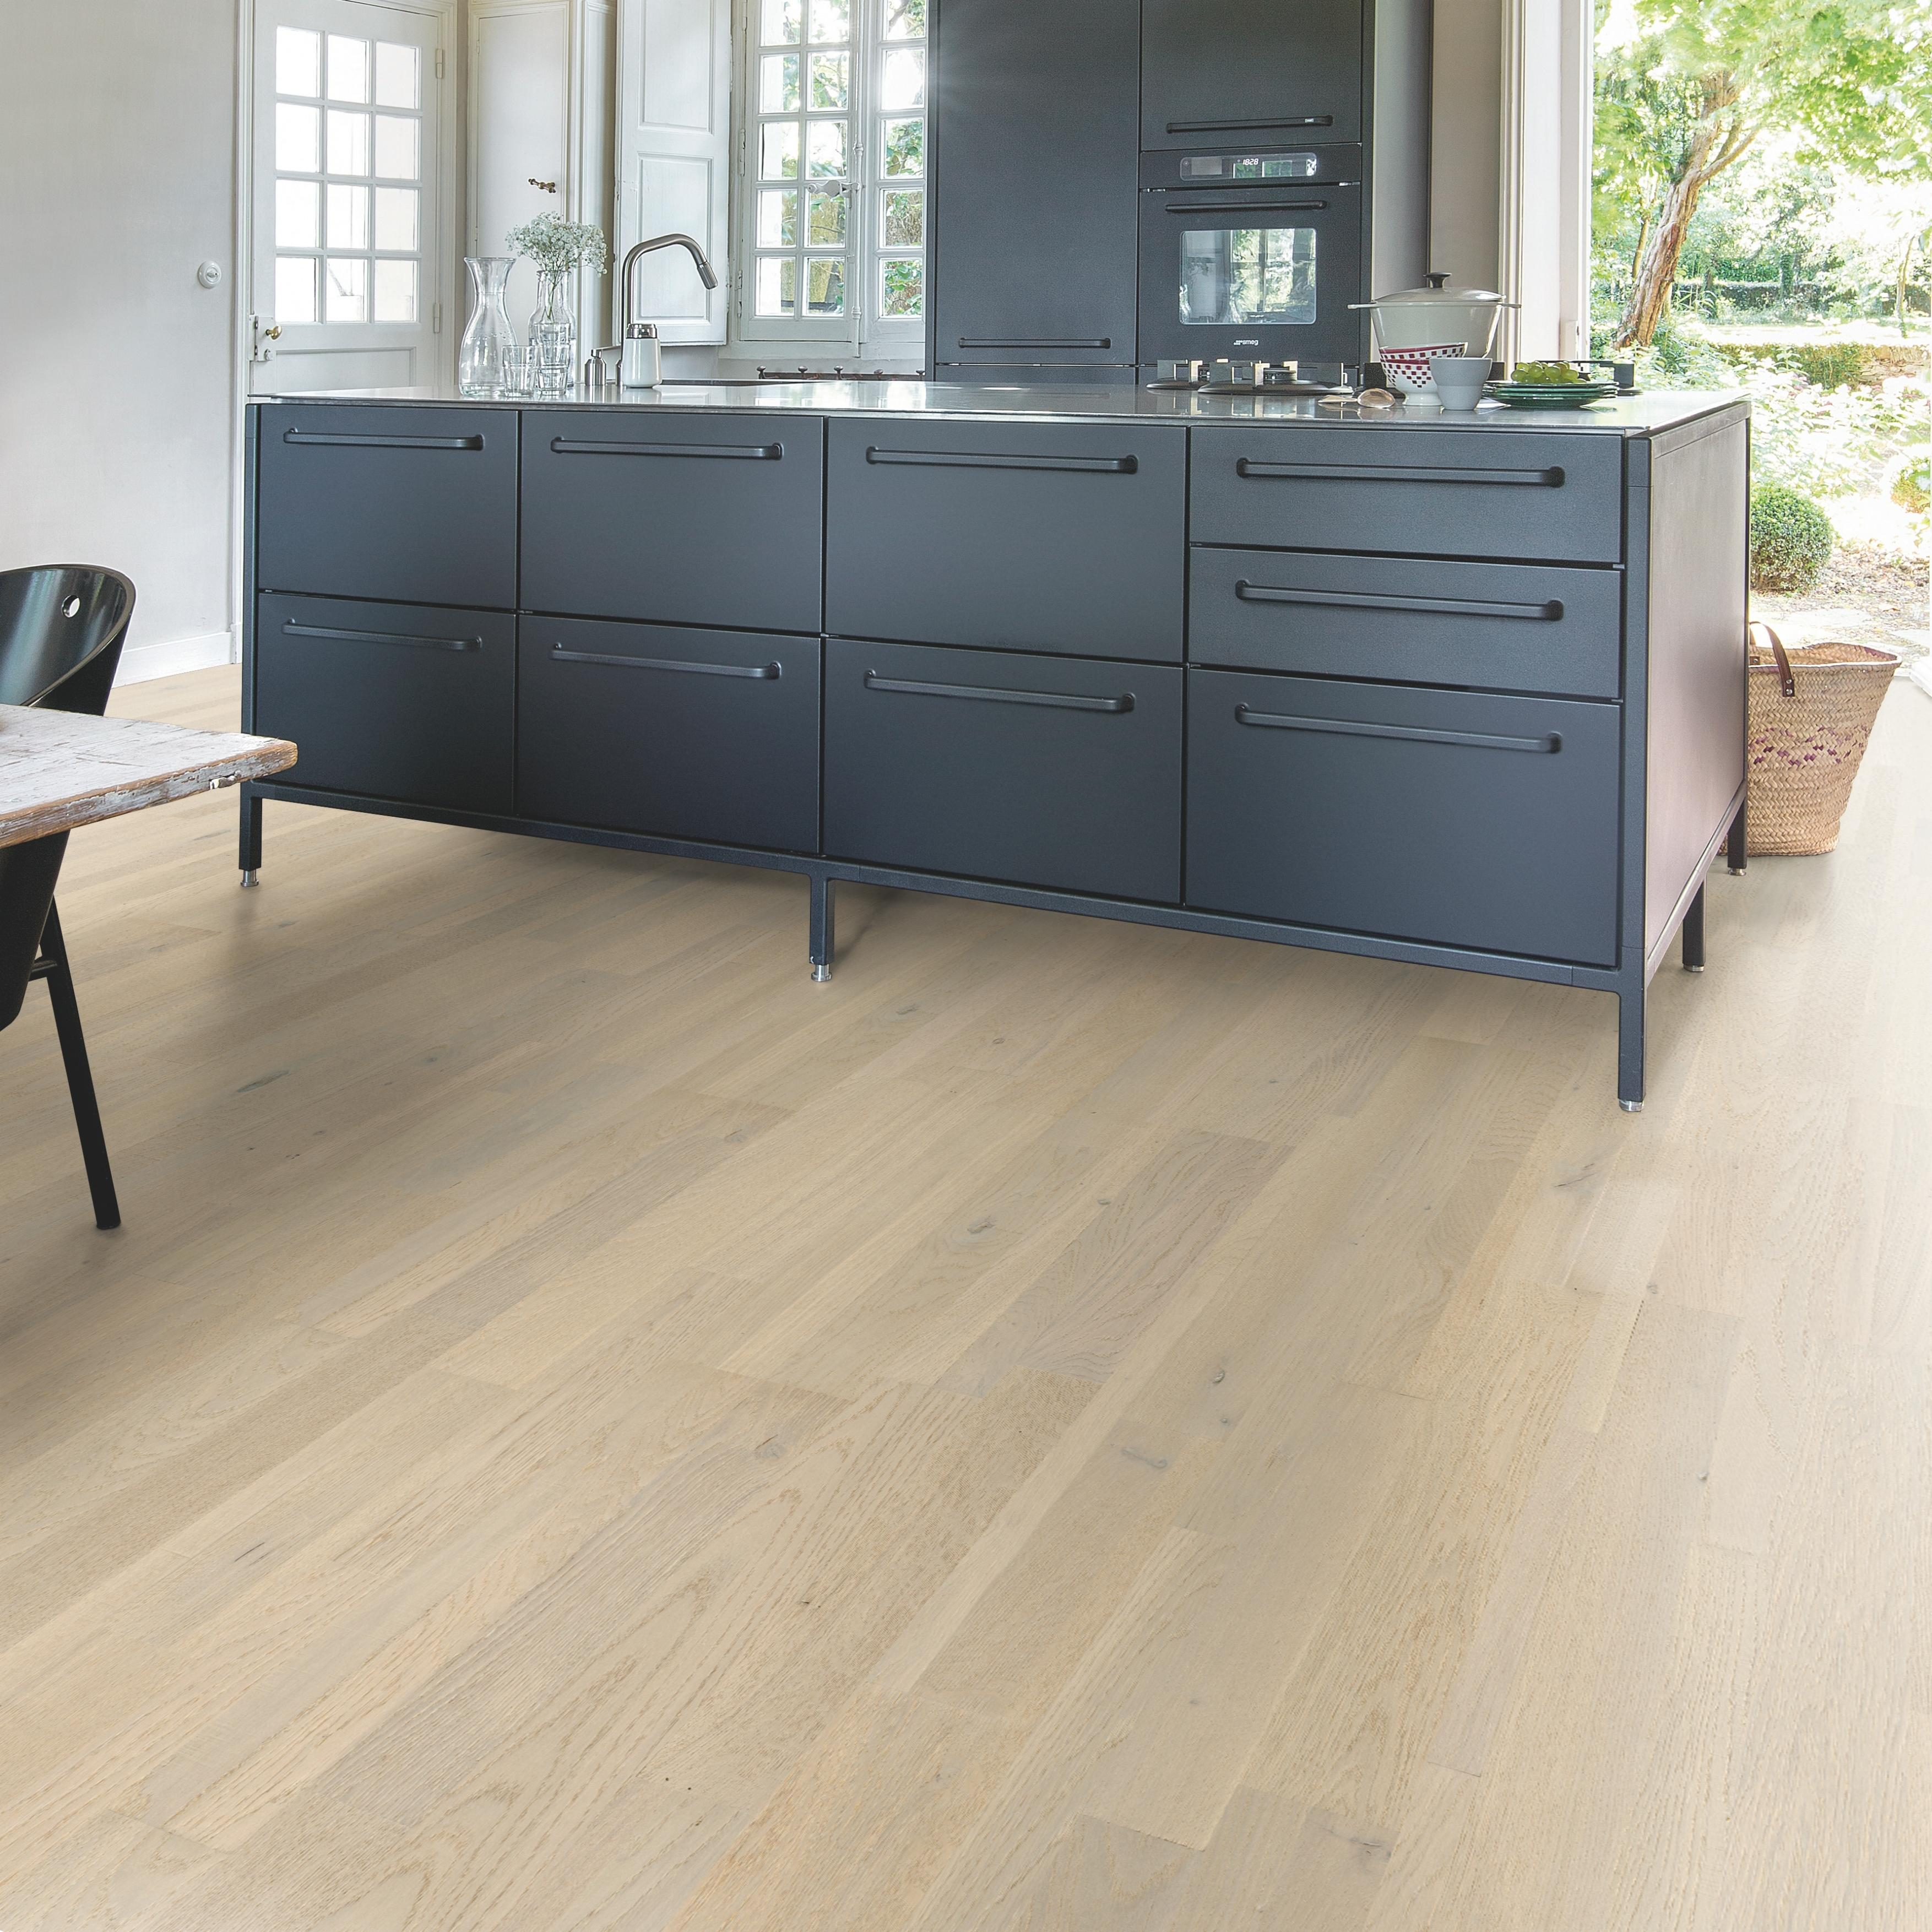 Quick-Step Variano Pacific Oak Extra Matt Engineered Realwood Flooring VAR5114S